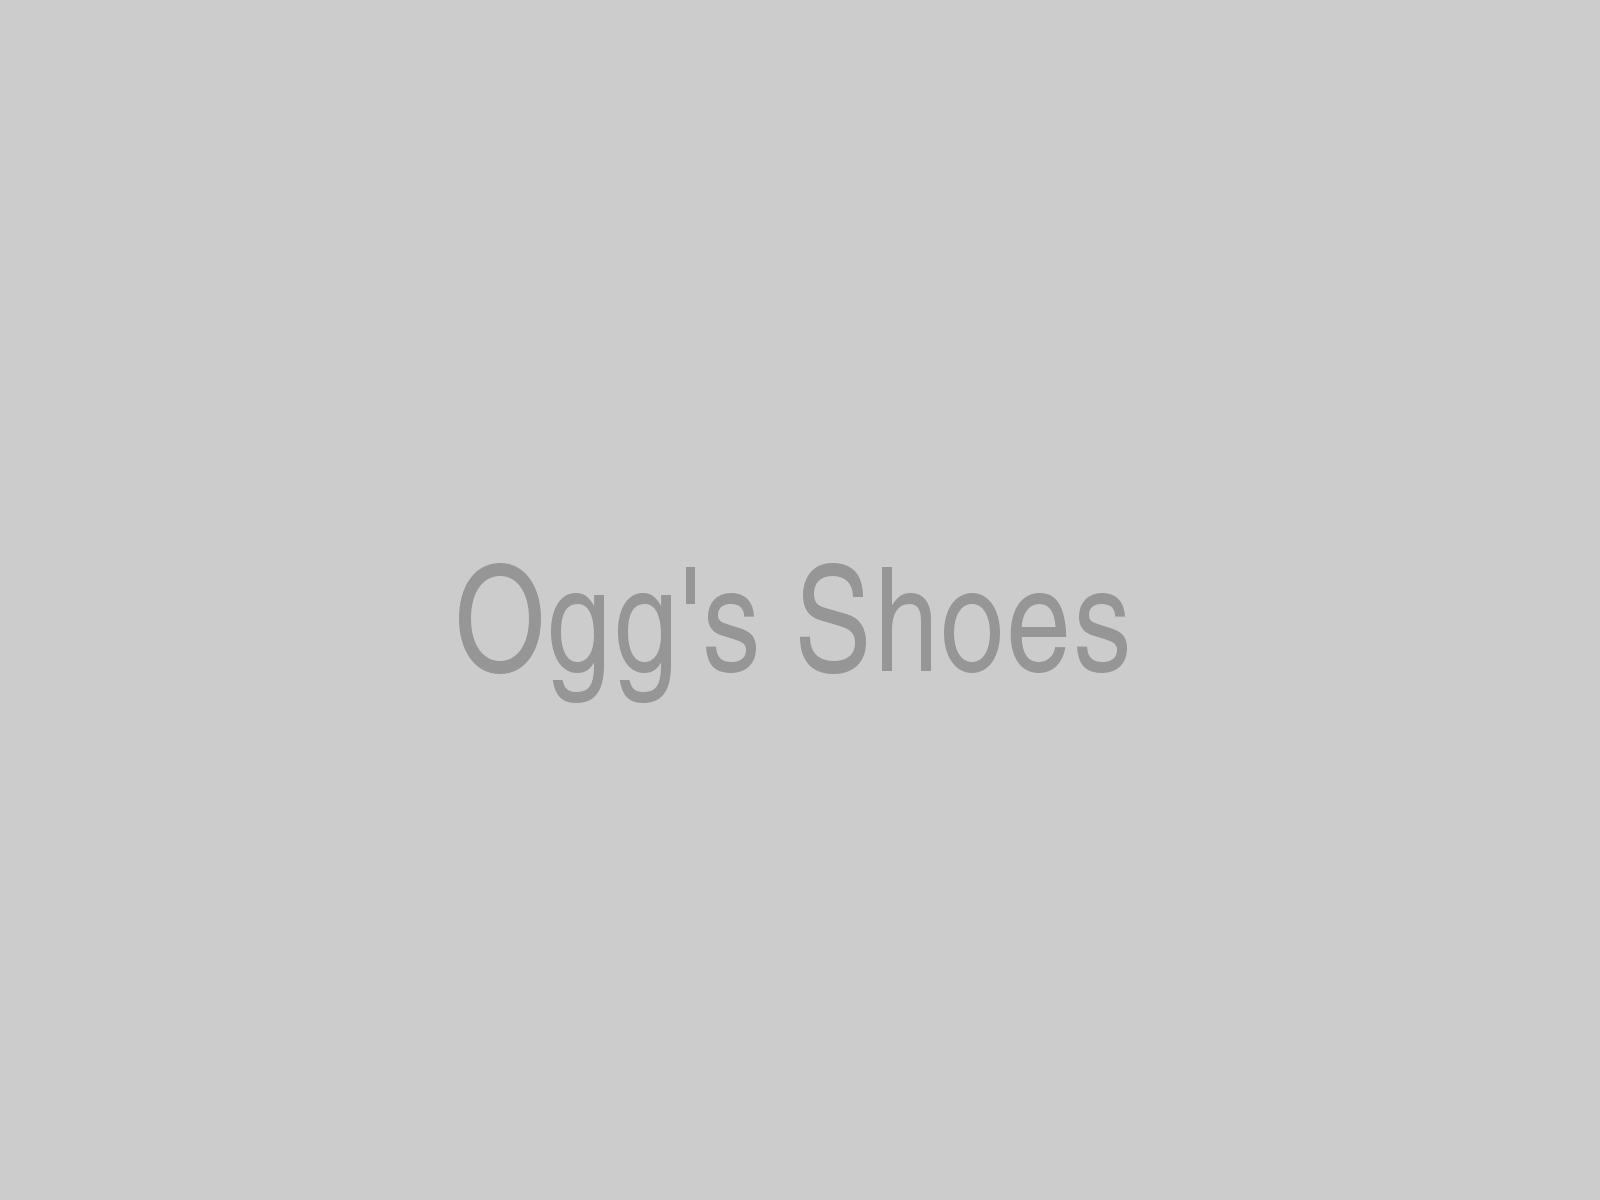 Ogg's Shoes